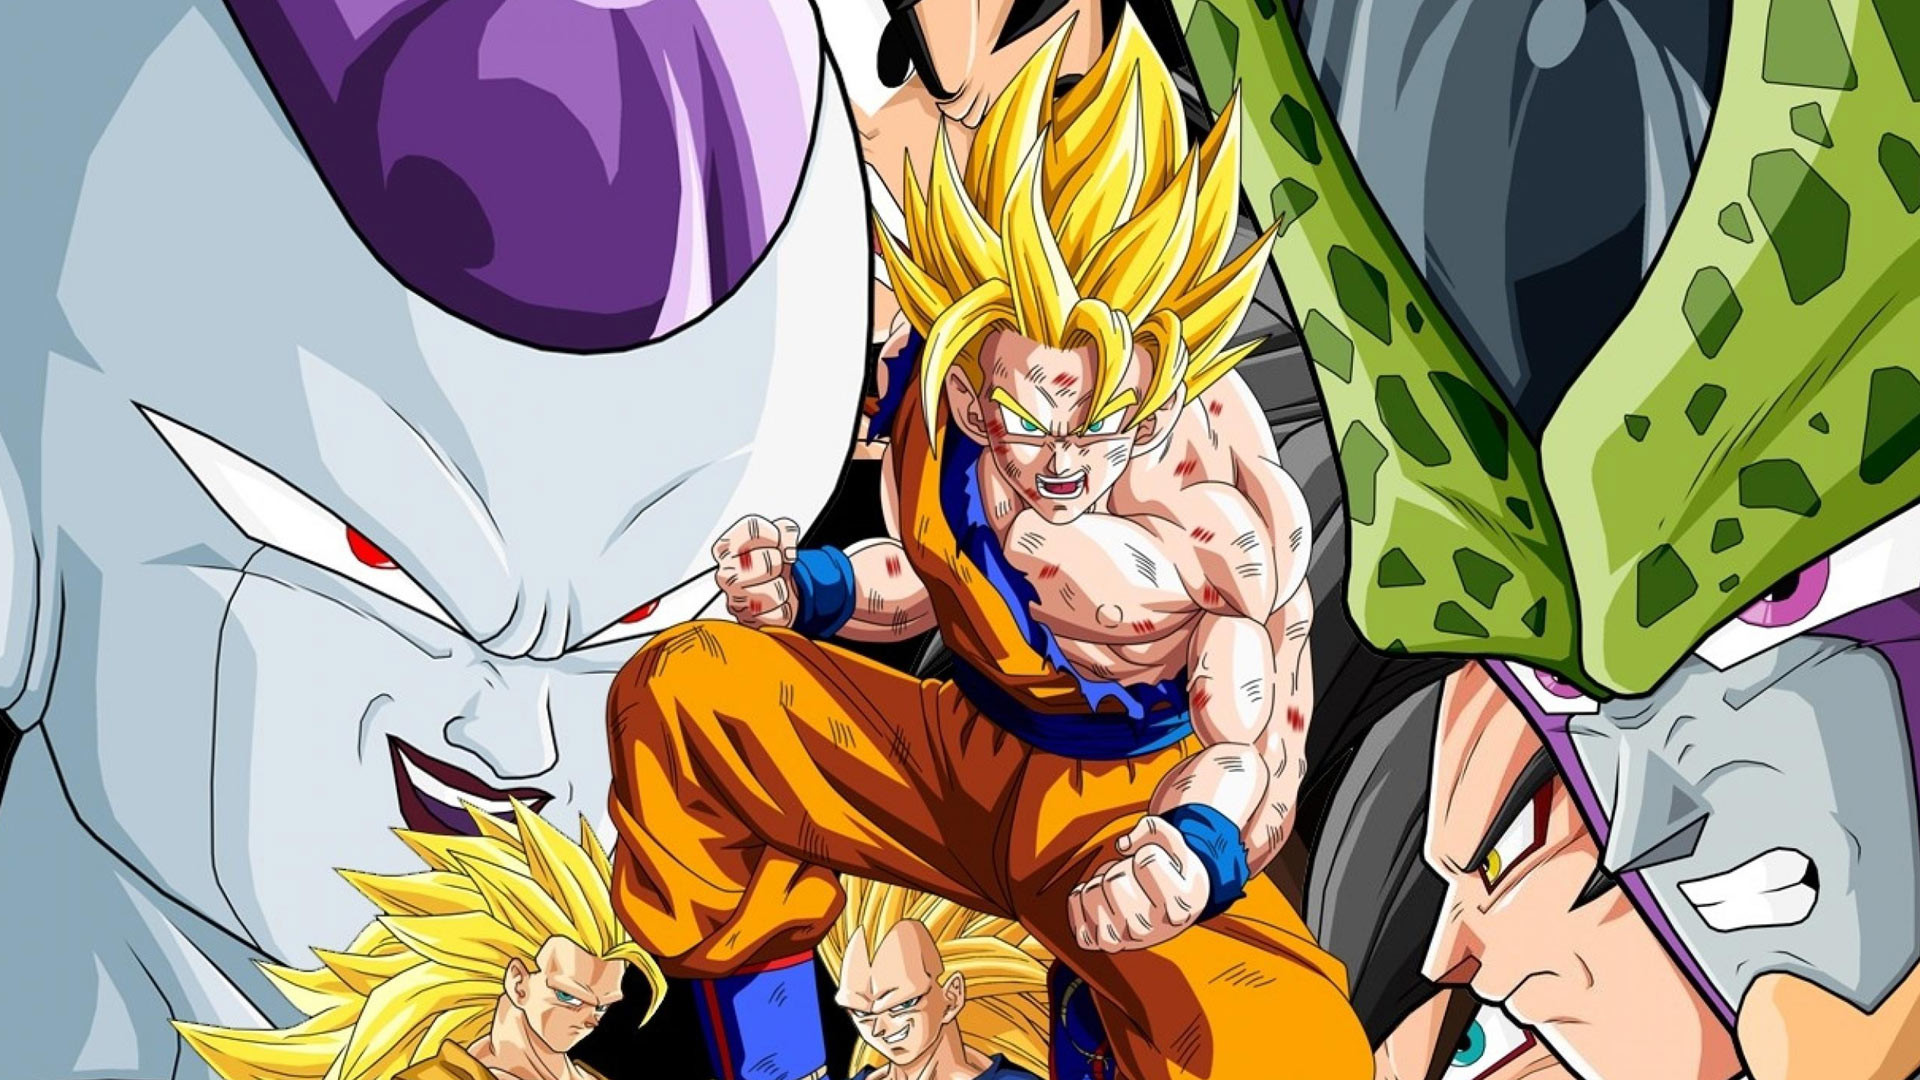 Goku Dragon Ball Z Hd Image Dragon Ball Wallpapers 1080 1920x1080 Wallpaper Teahub Io